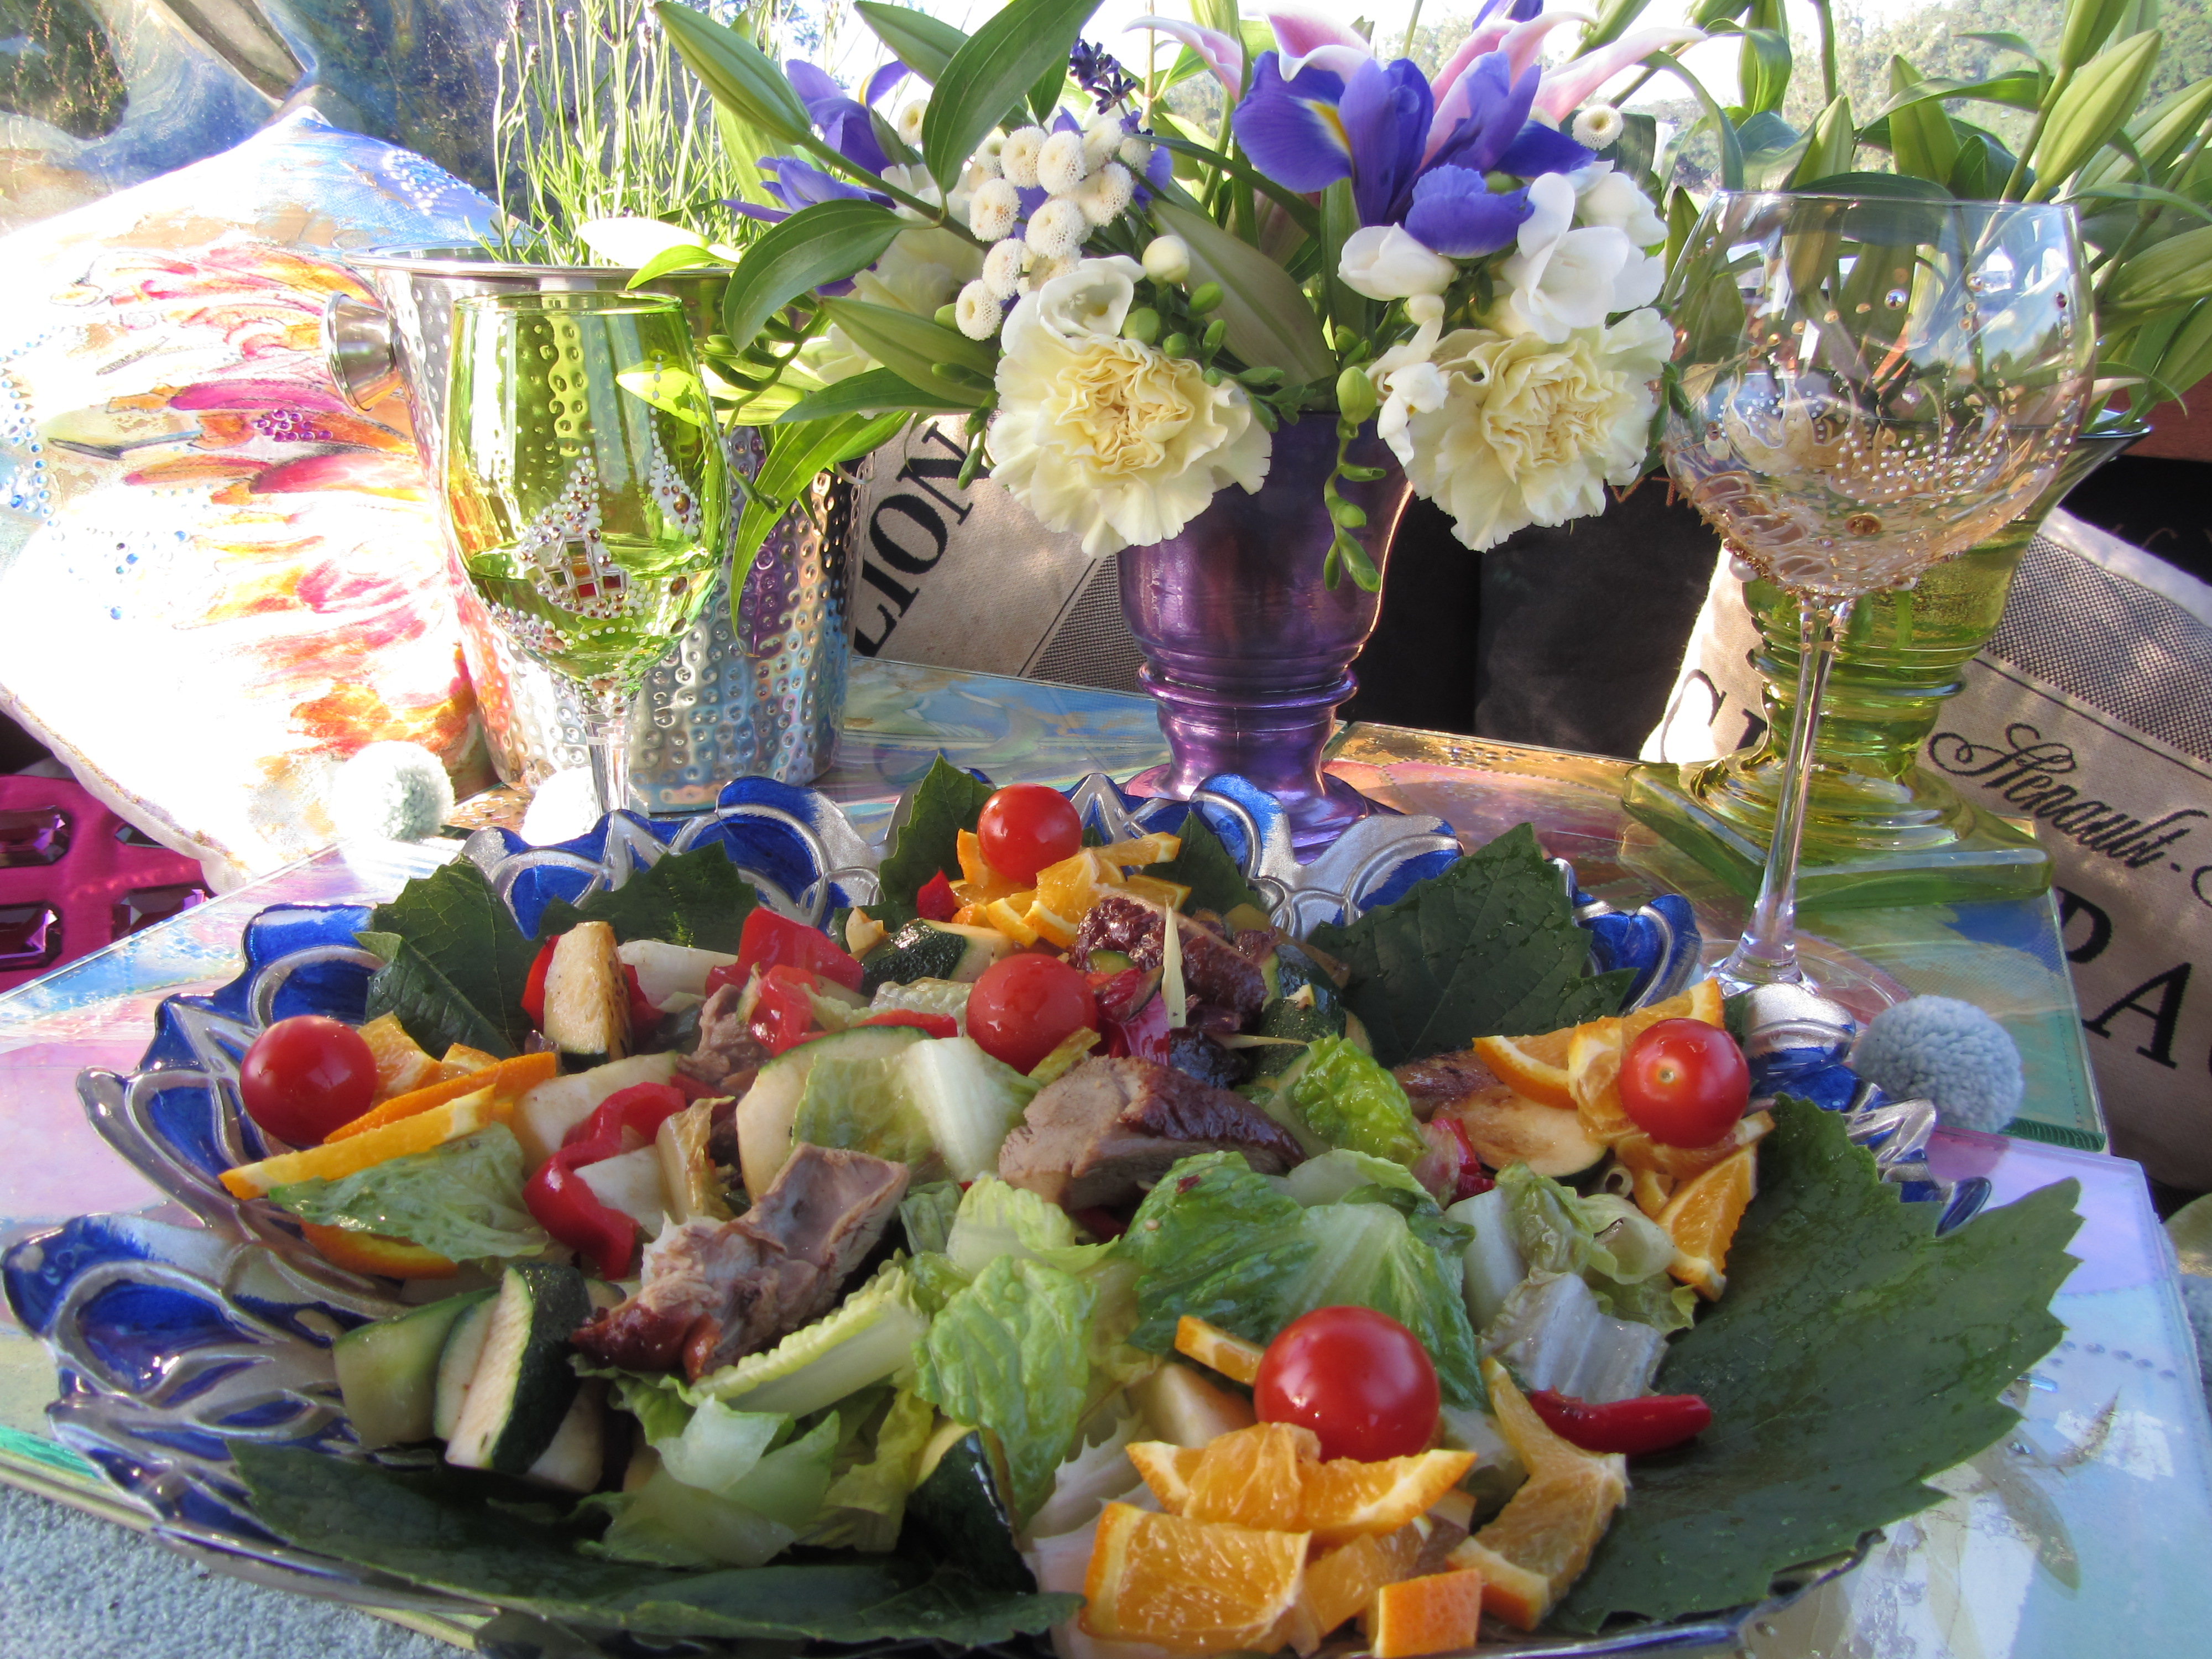 Aromatic duck salad served on vine leaves, in a decorative blue shallow glass bowl